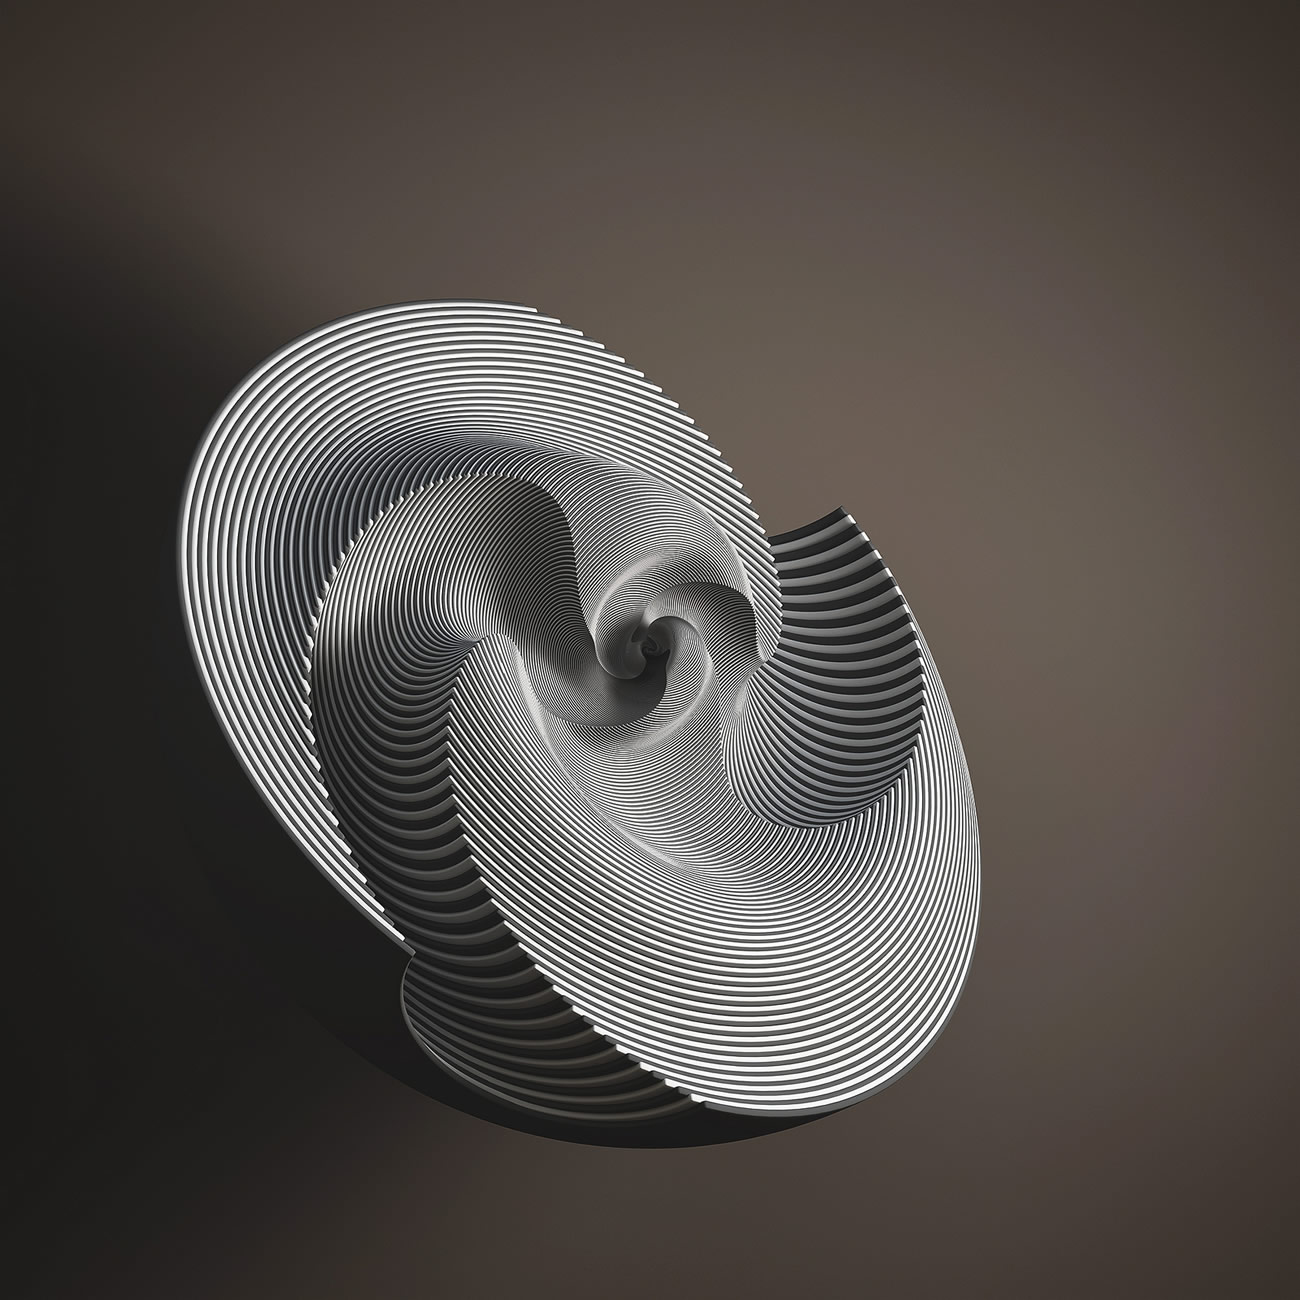 3-d sculpture shell digital